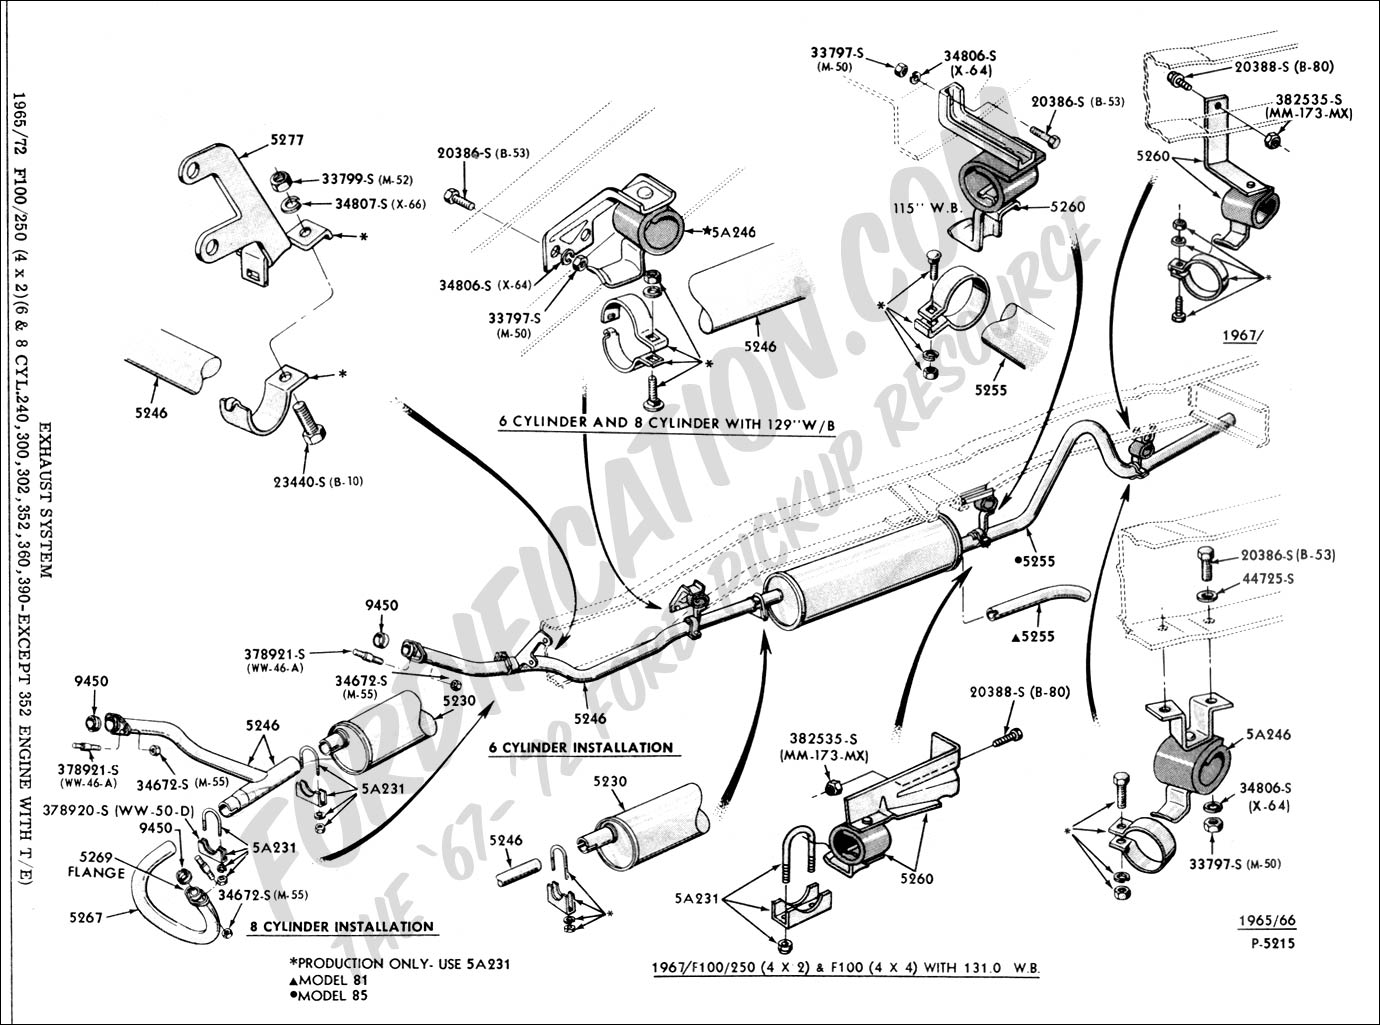 1989 ford f 150 4x4 58 engine diagram 1989 ford f 150 headlight switch wiring diagram